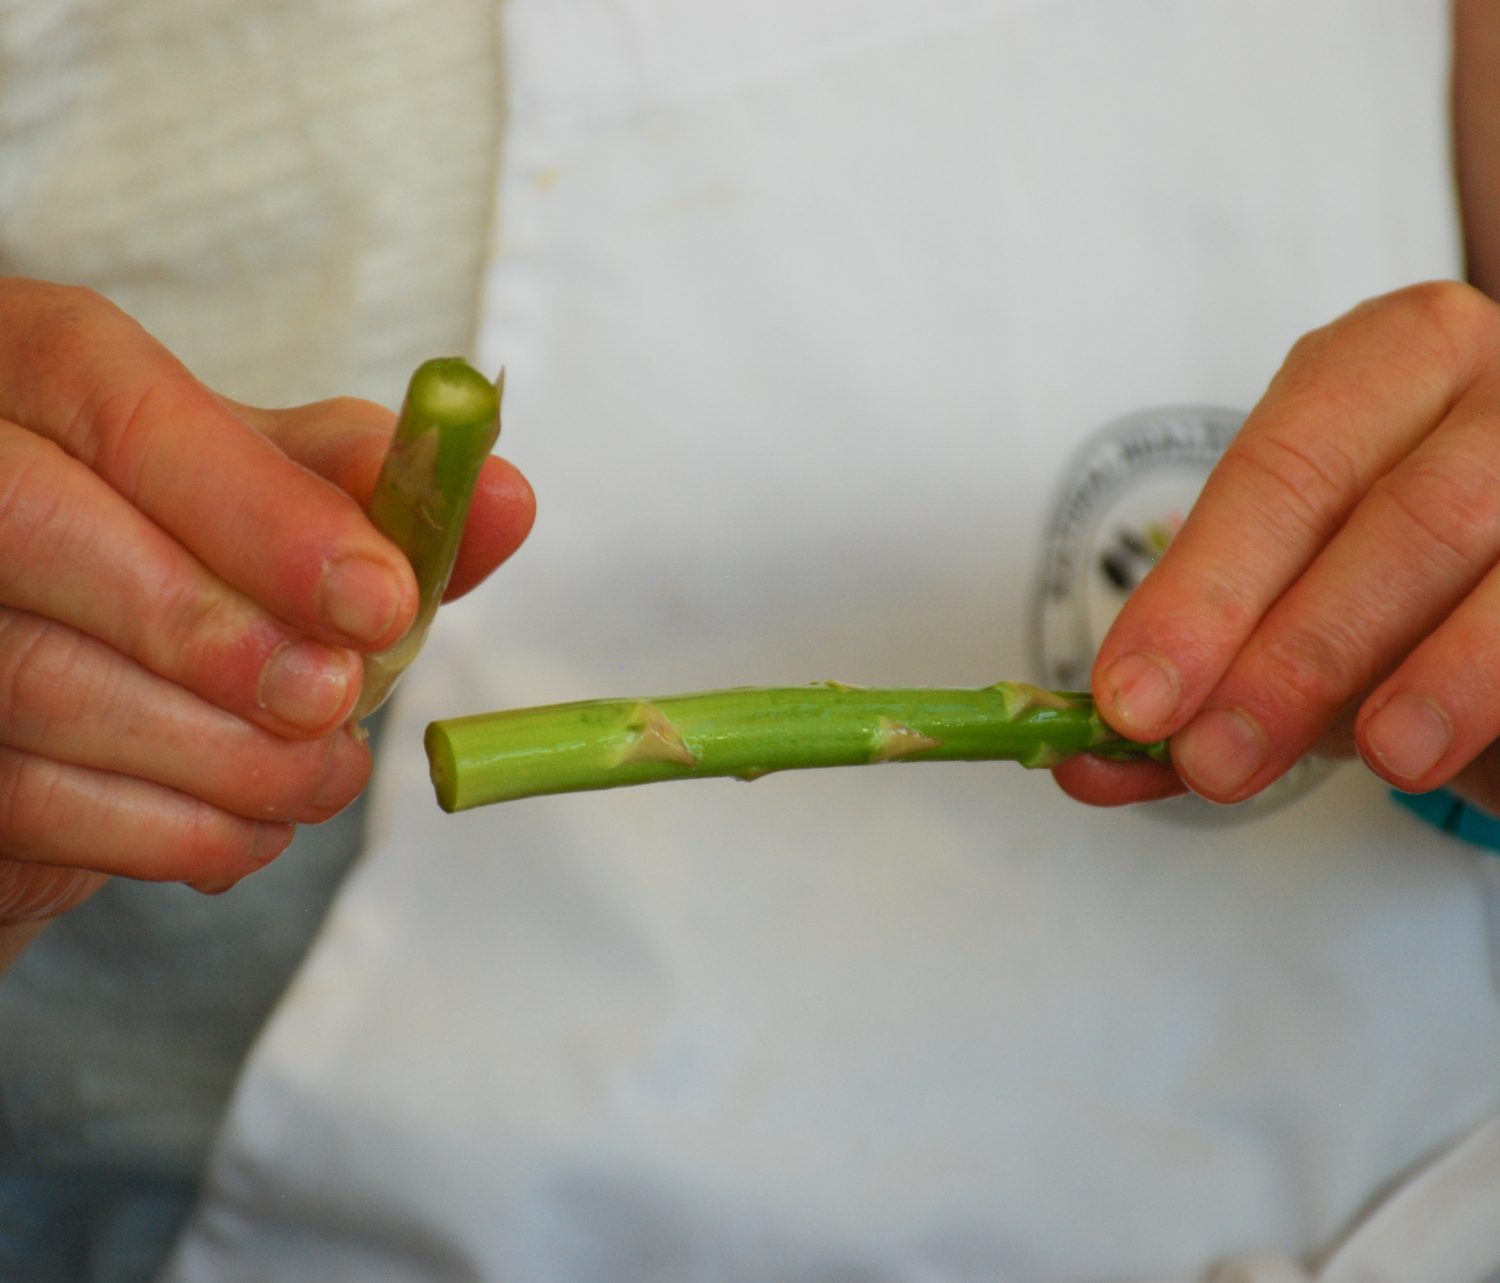 Snapping Asparagus